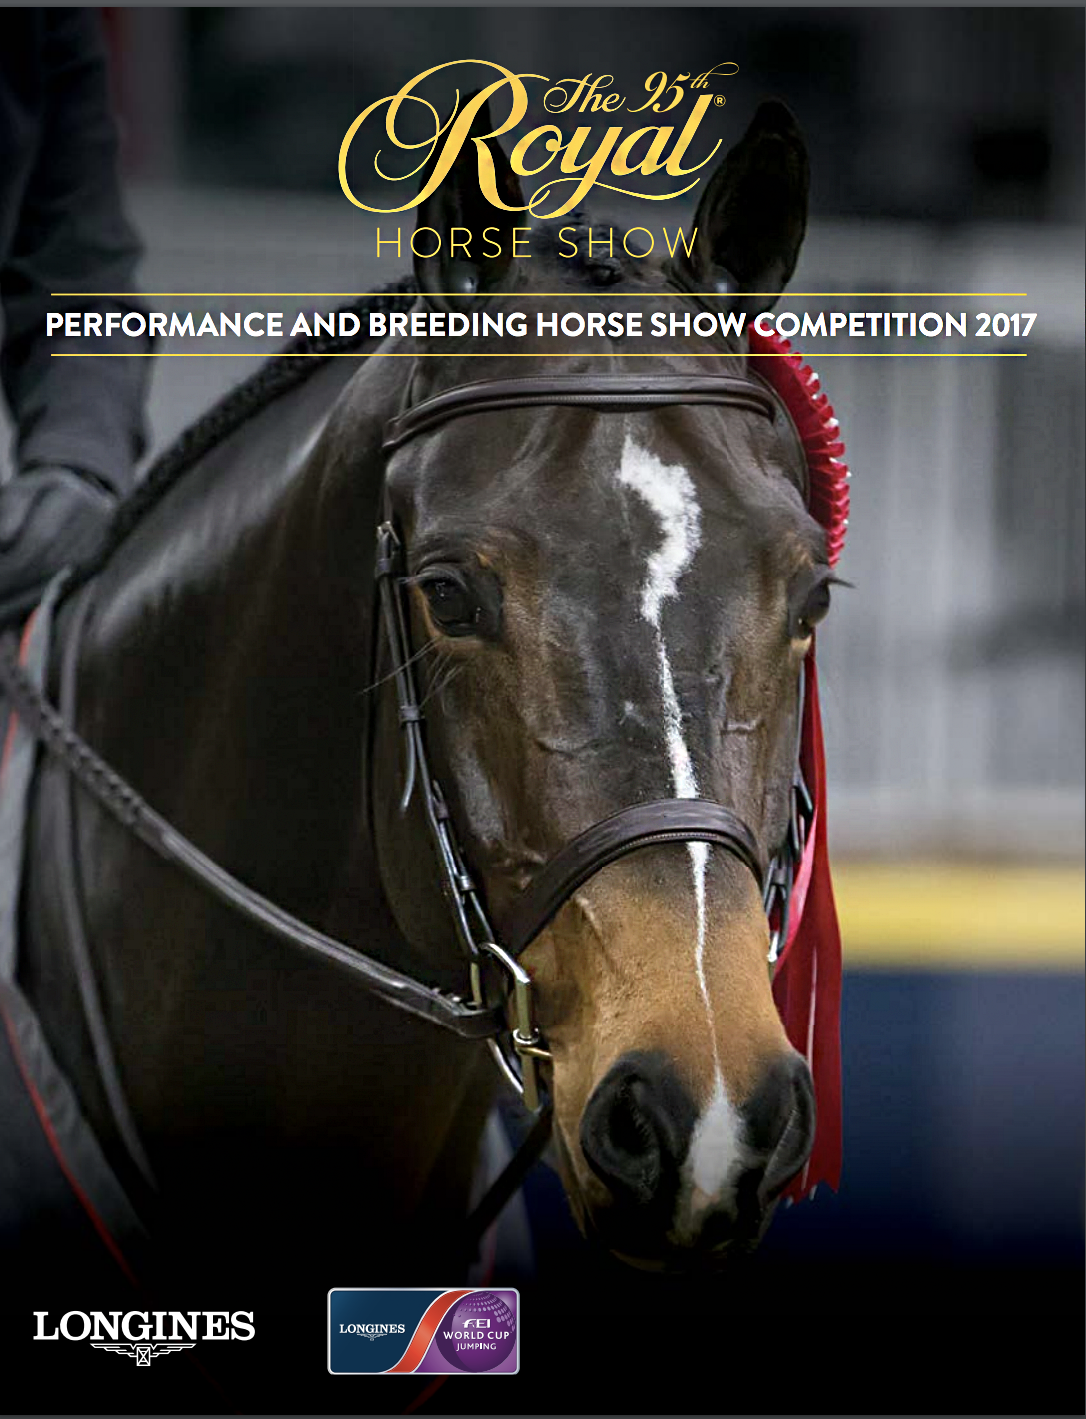 The Royal Horse Show, Prize List, 2017